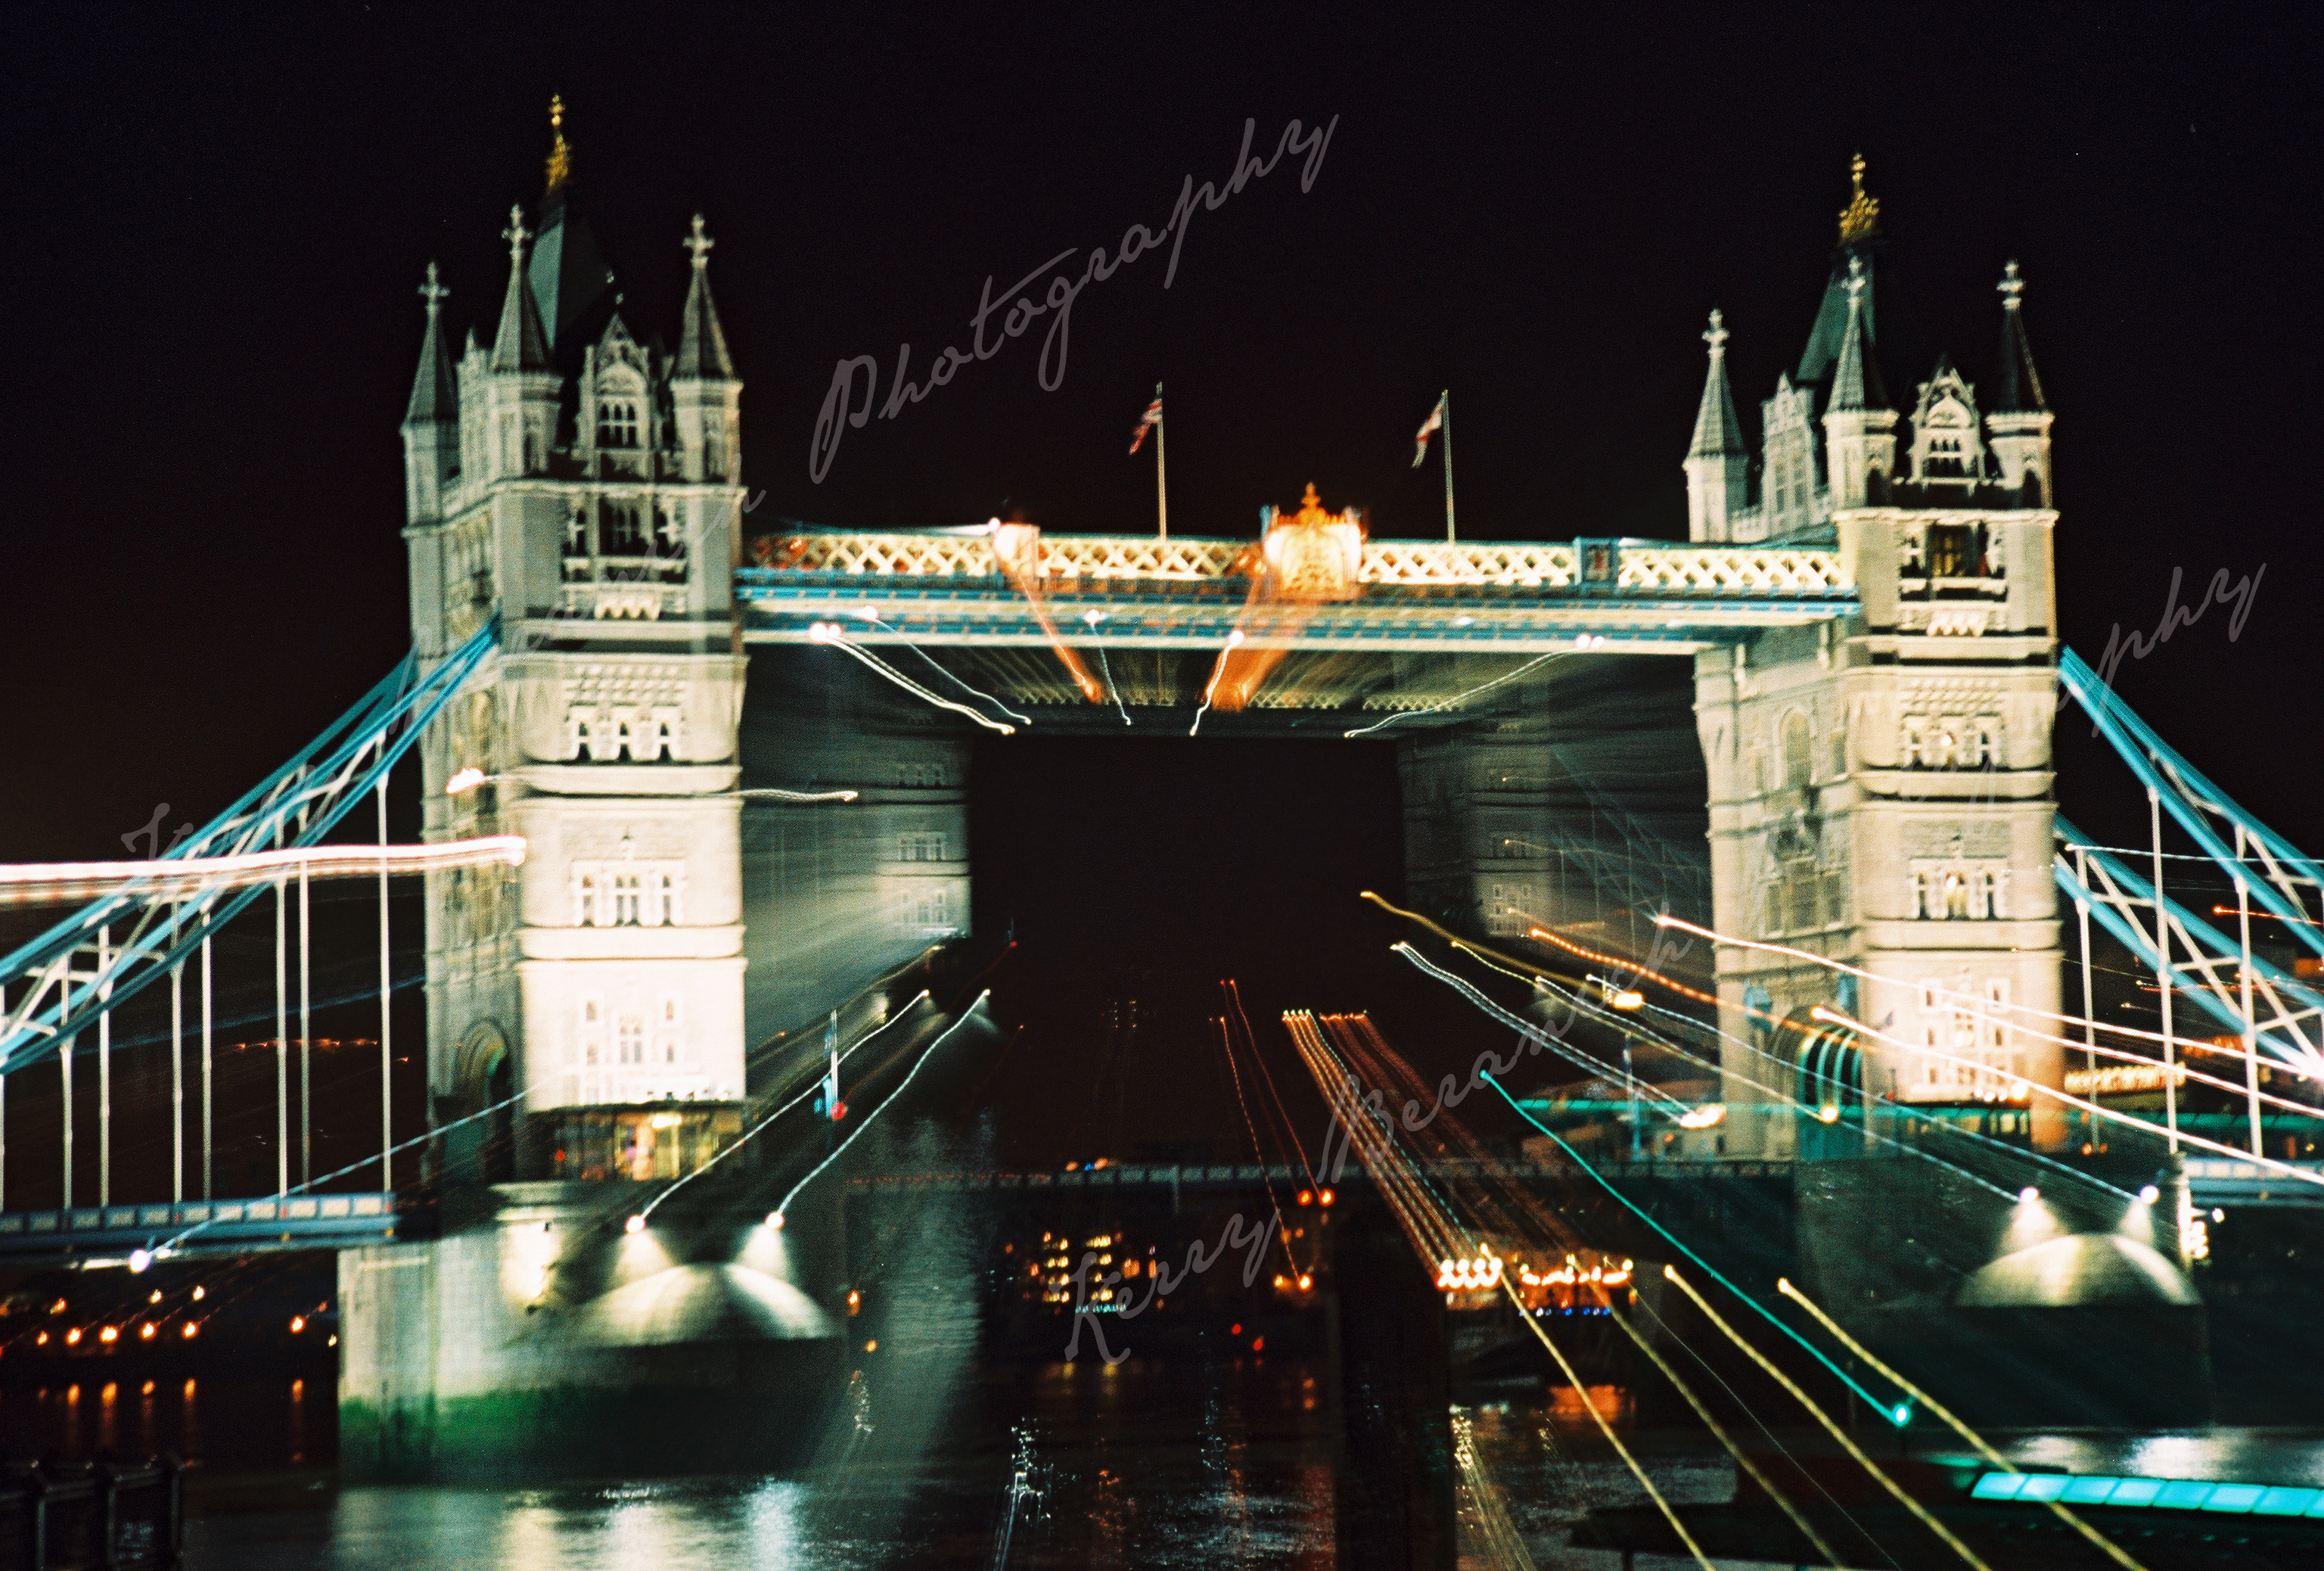 Tower Bridge watermark